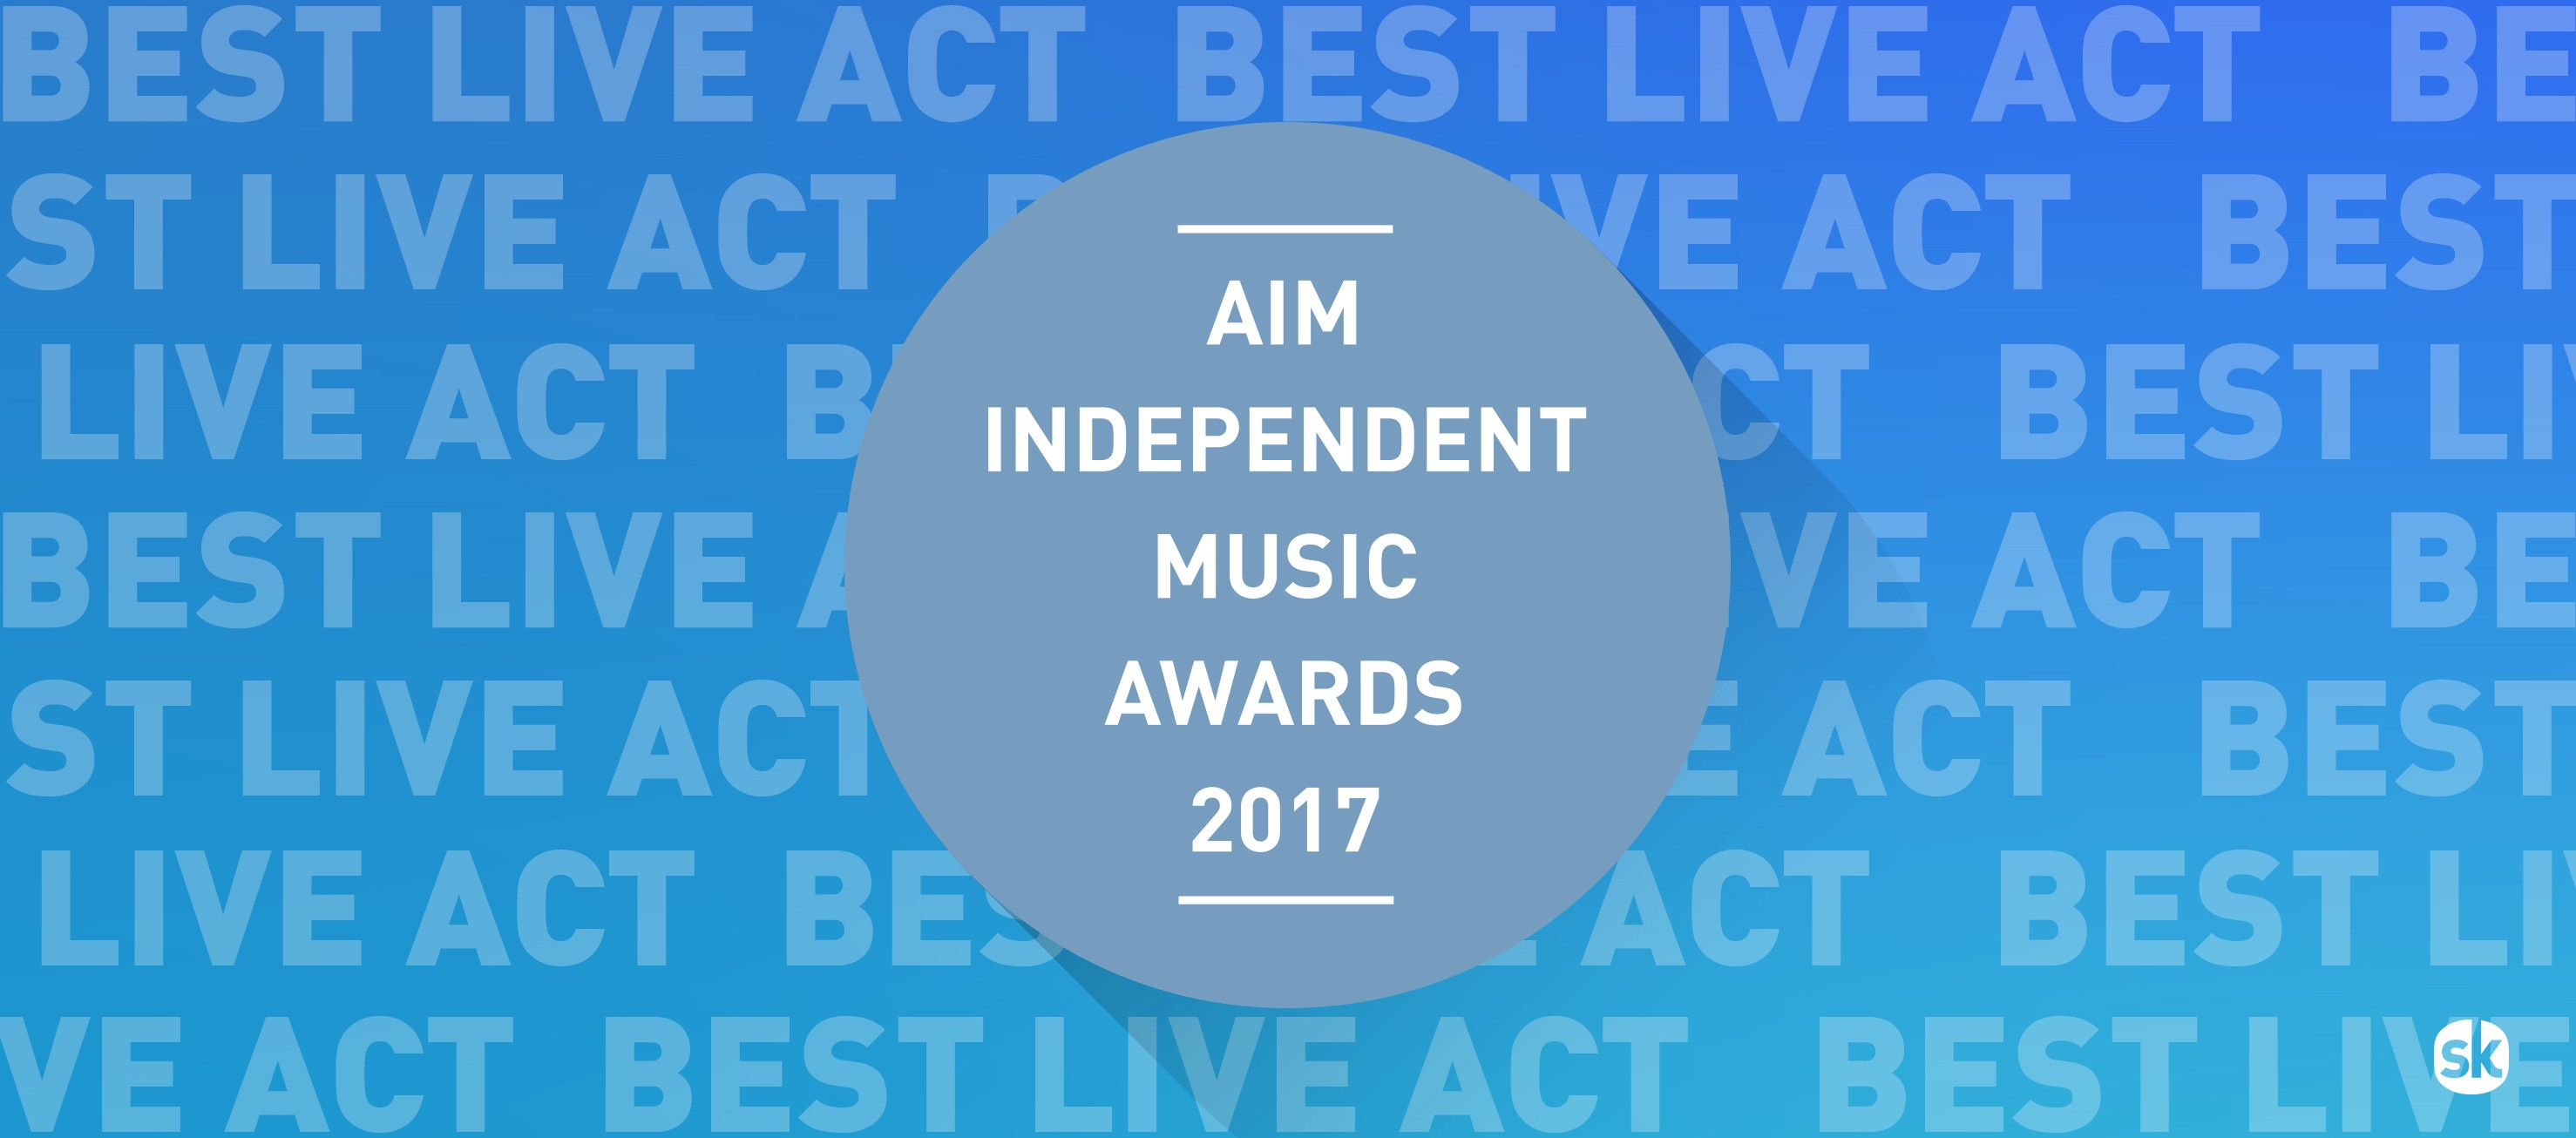 Vote for Your Favorite Live Act of 2017 - Songkick